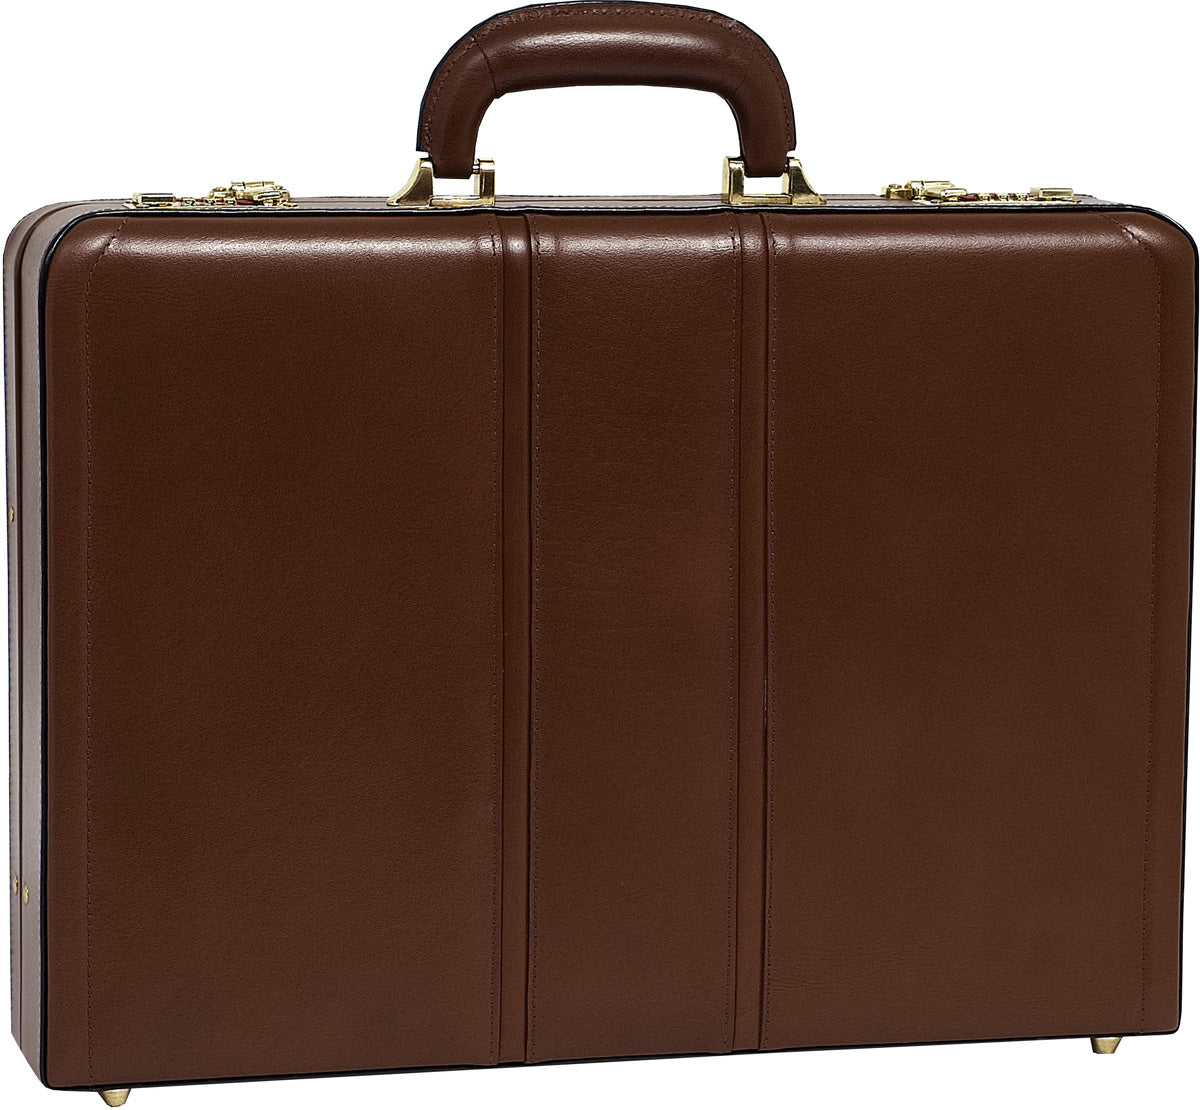 McKlein V Series Coughlin Leather Expandable Attache Case